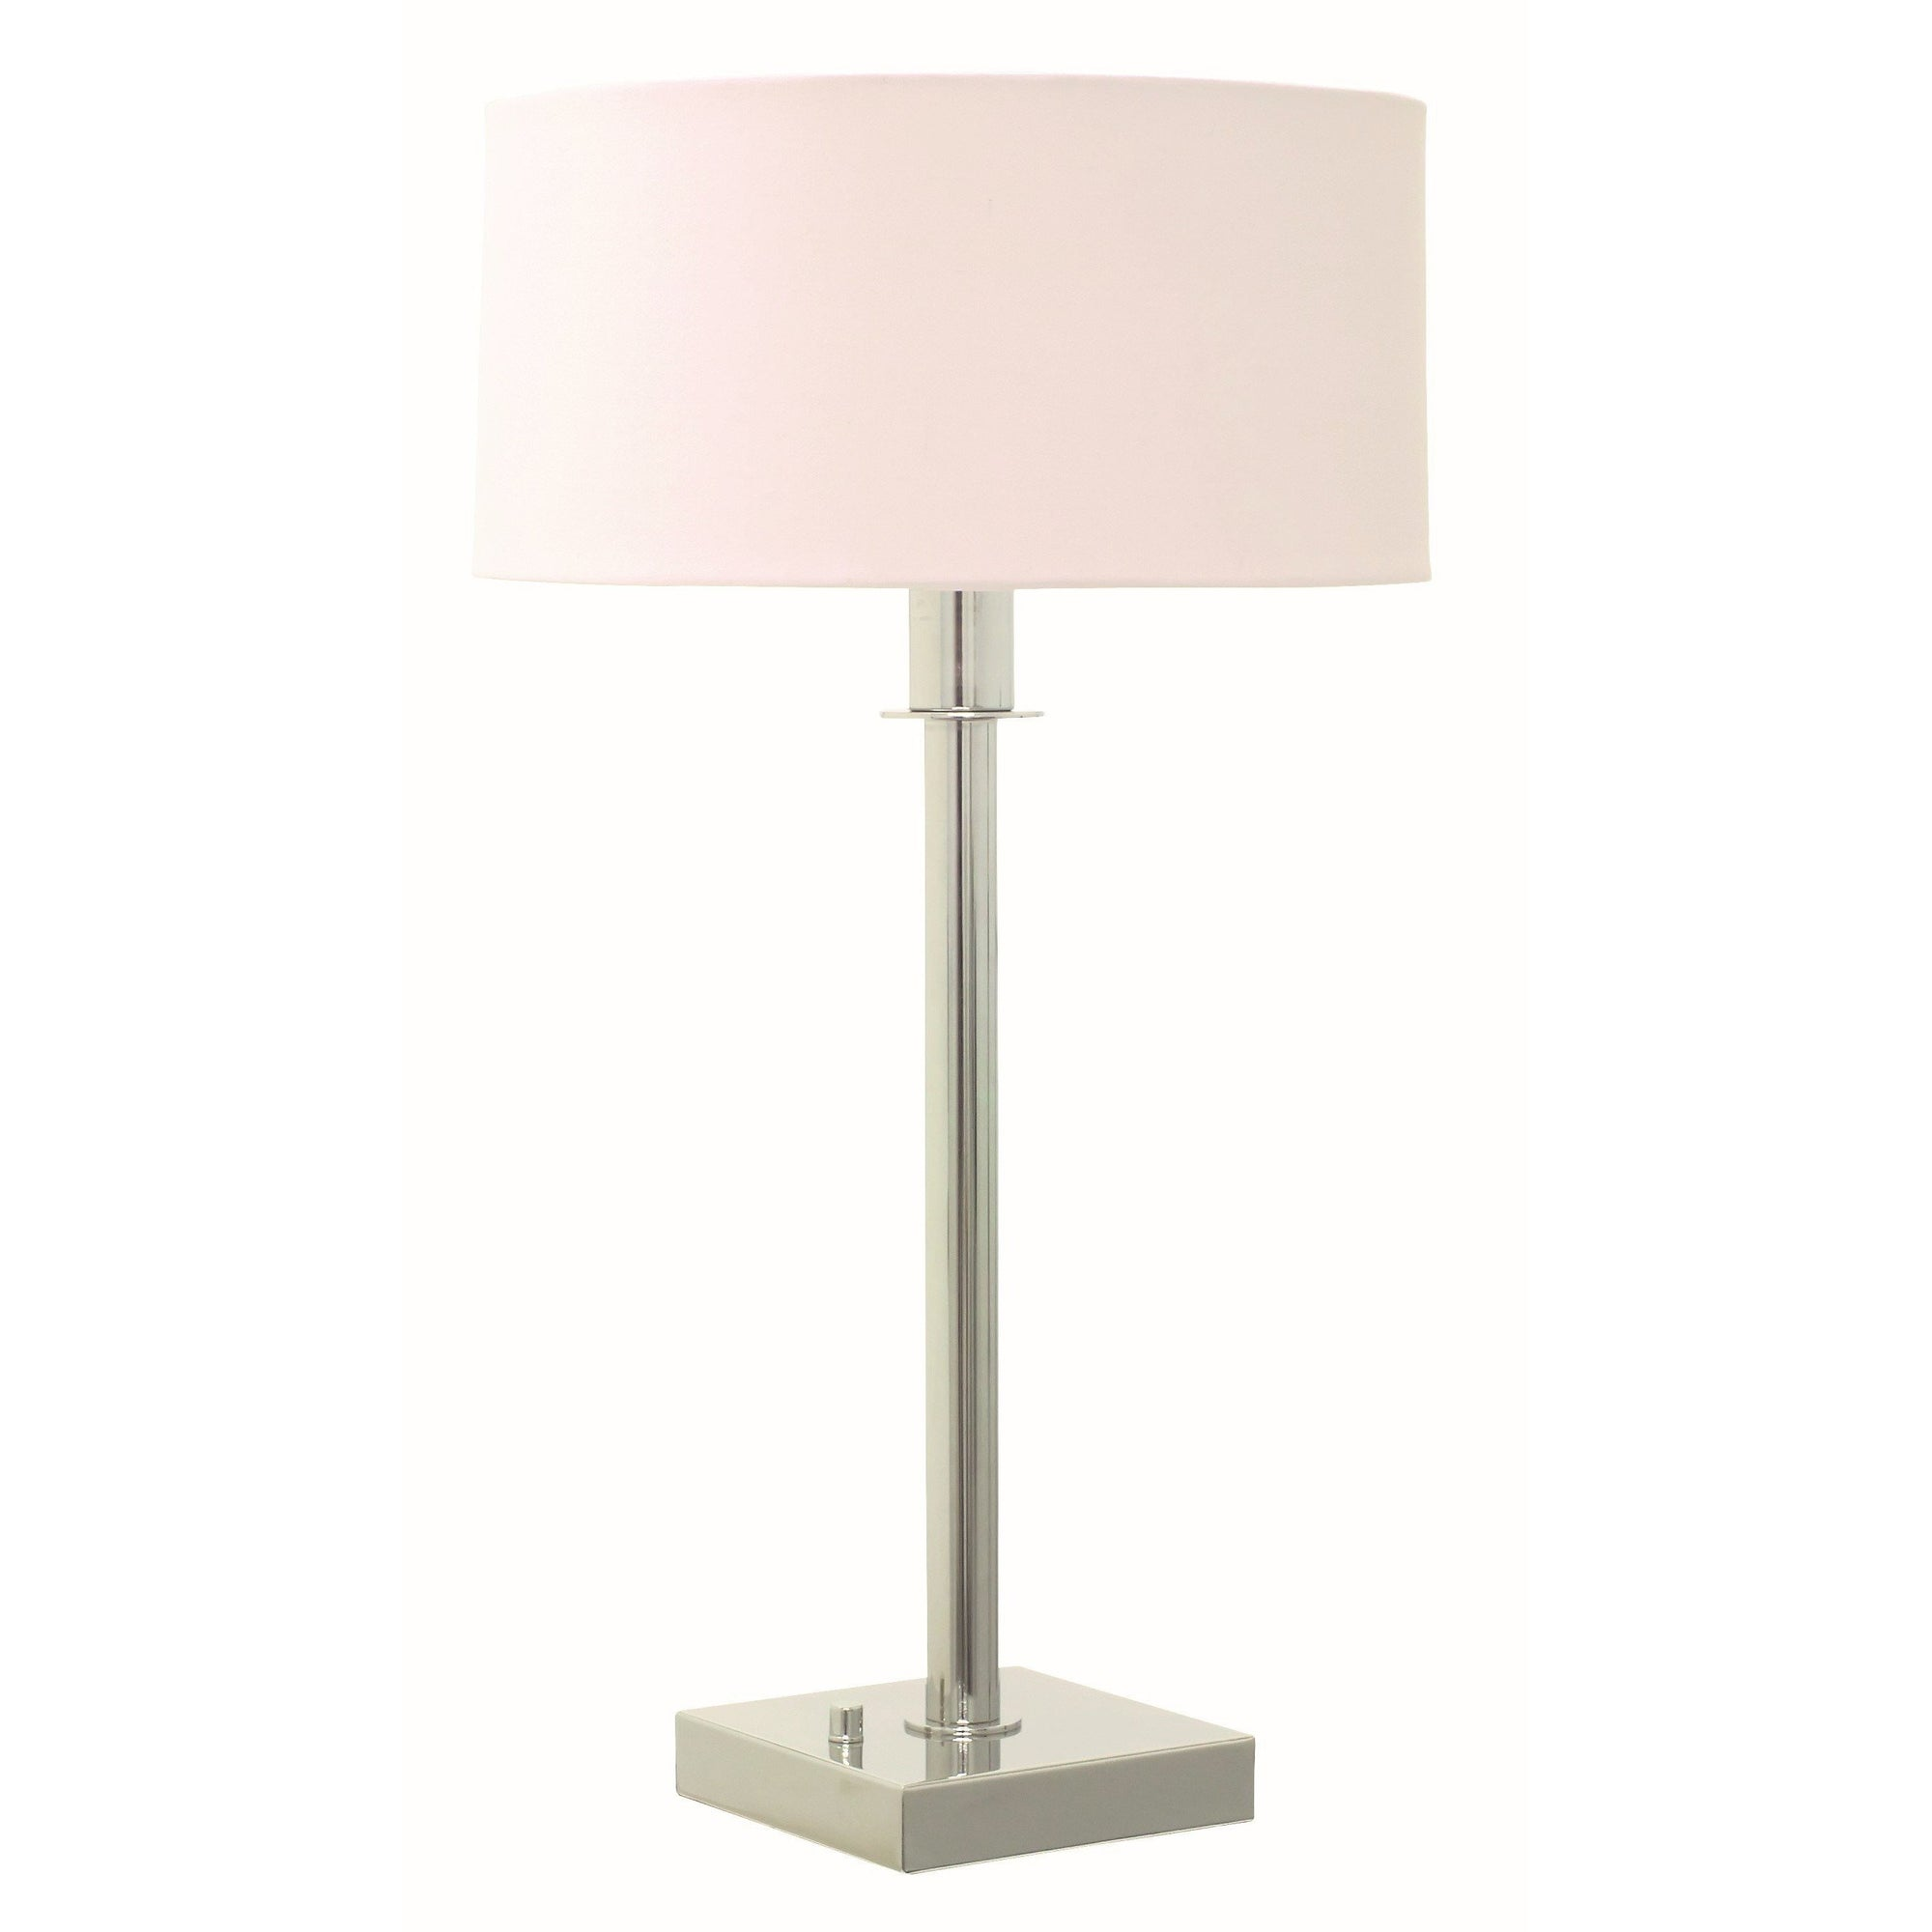 House Of Troy Table Lamps Franklin Table Lamp with Full Range Dimmer and USB Port by House Of Troy FR750-PN